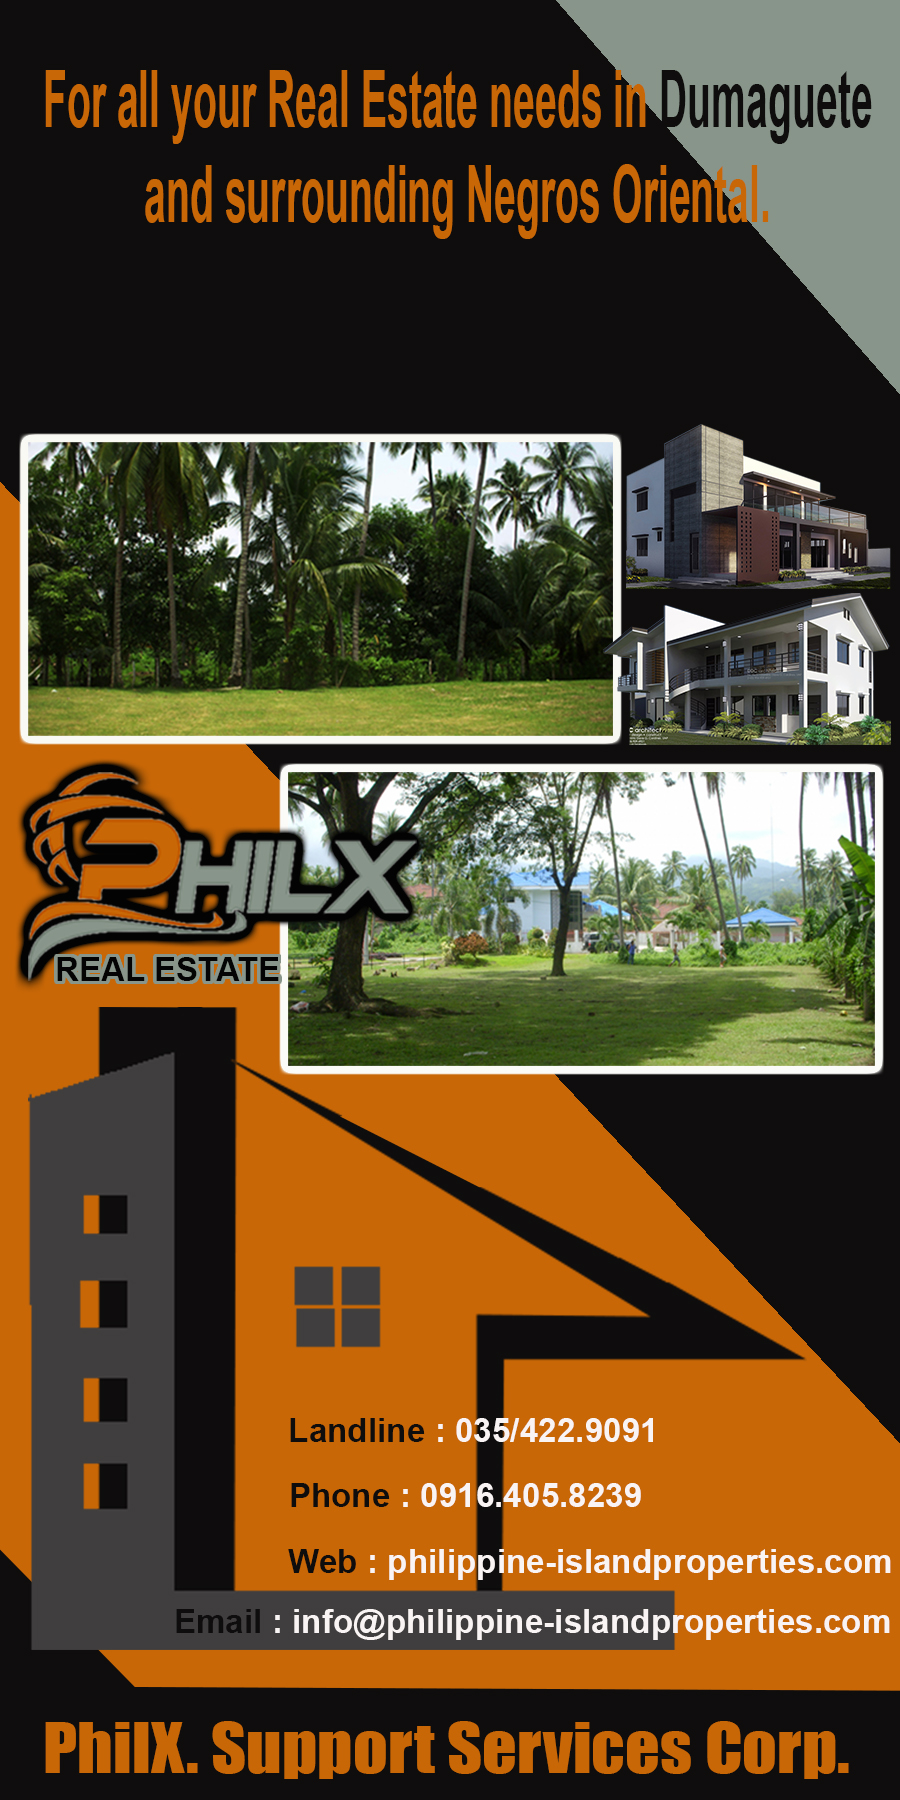 philx real estate buy purchase land expat dumaguete